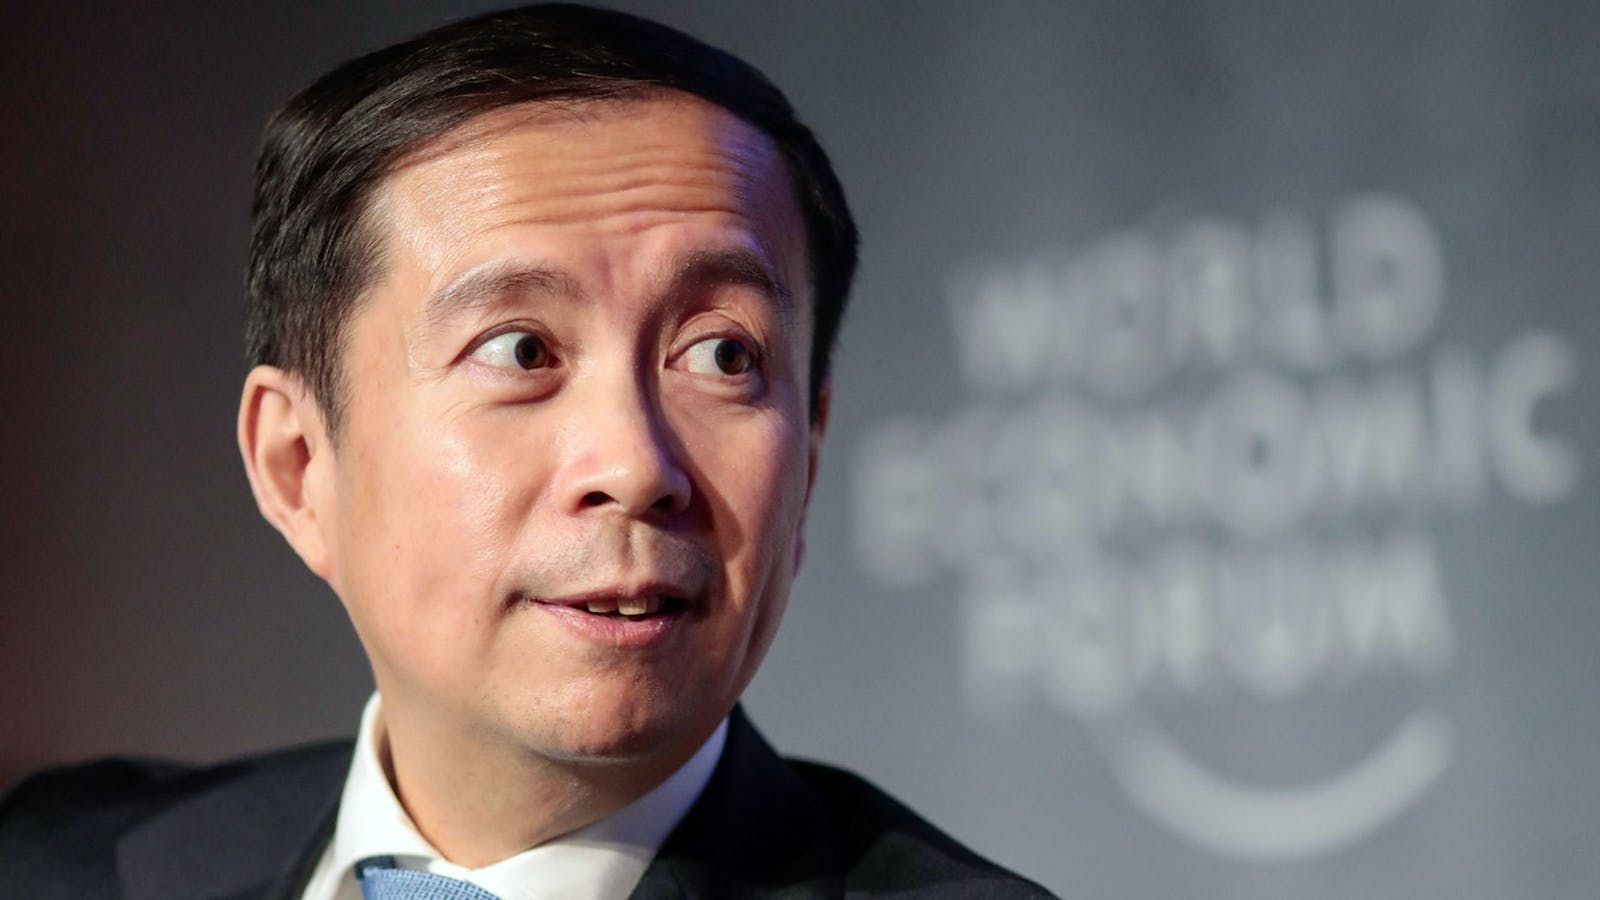 Daniel Zhang, CEO of Alibaba. Photo by Bloomberg